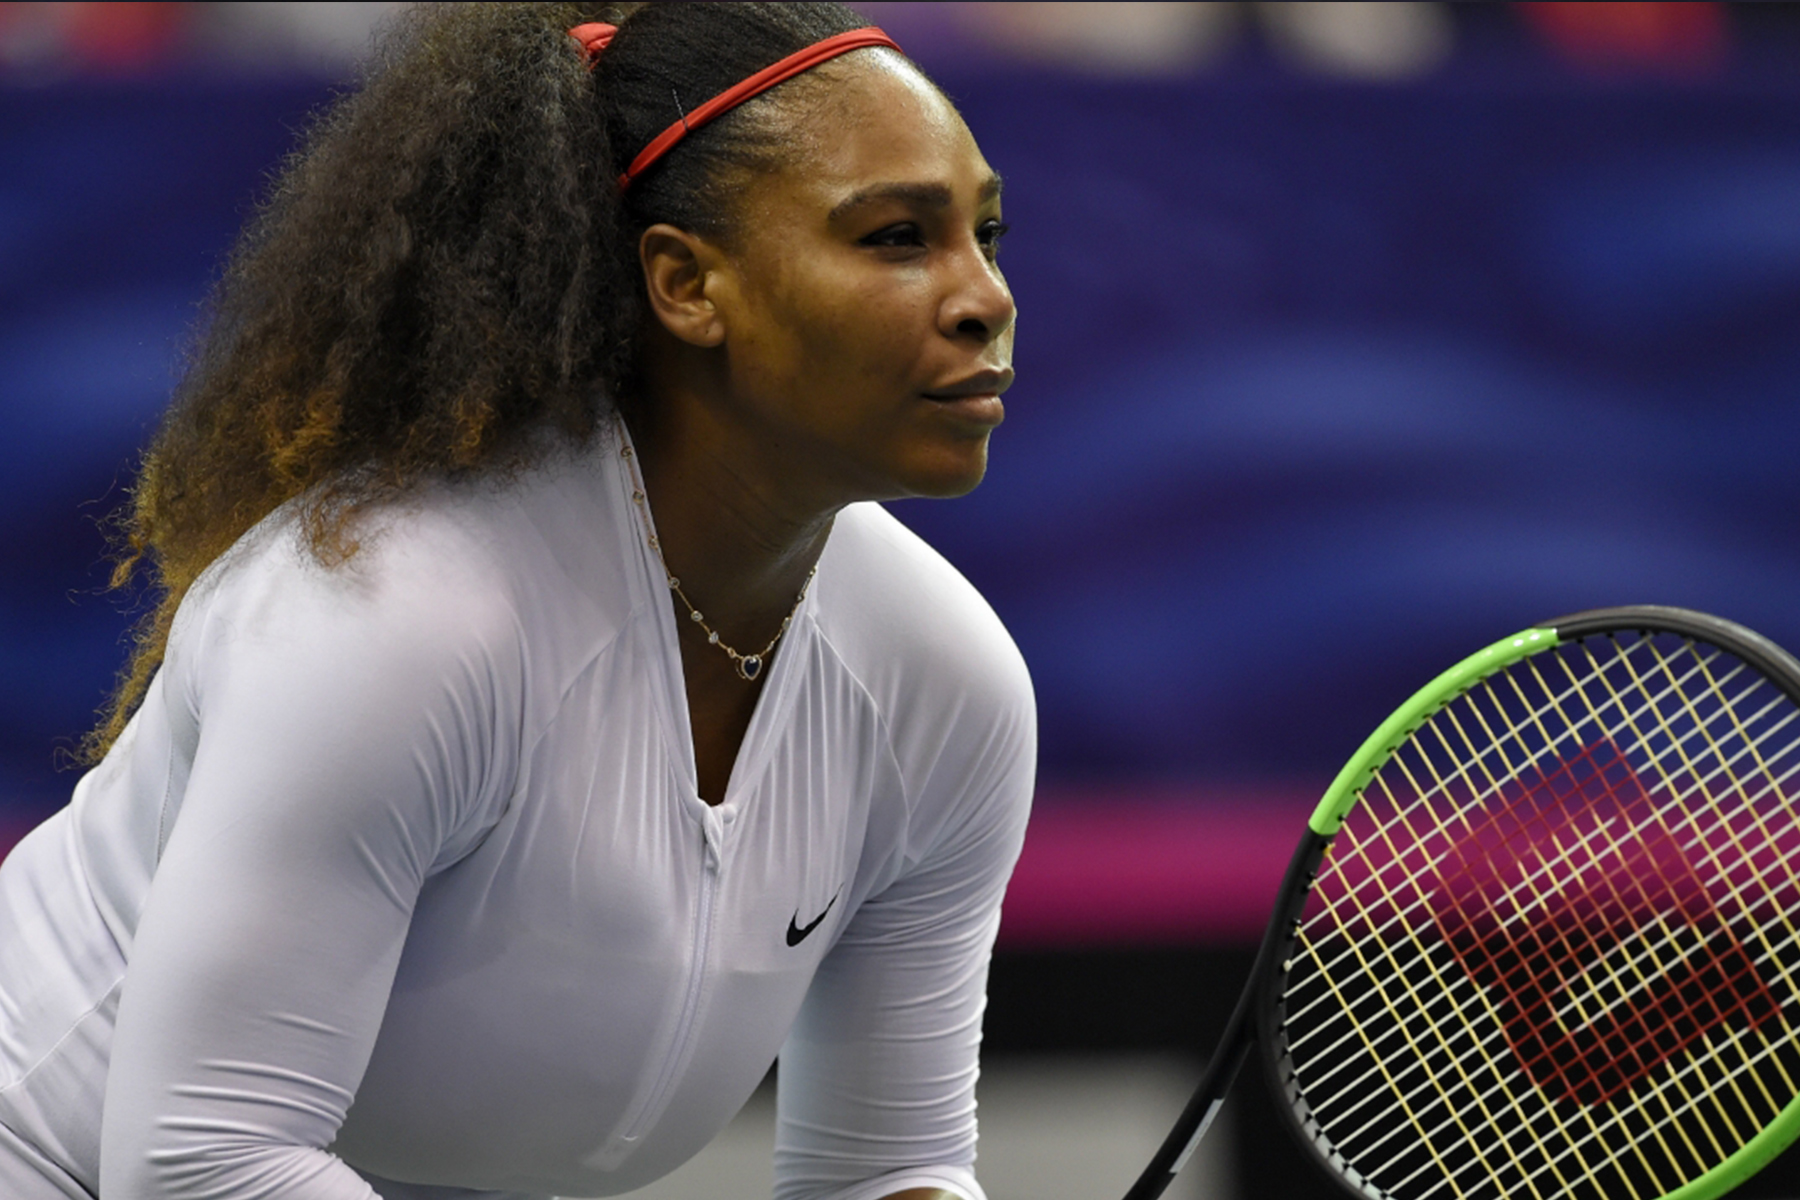 Serena Williams disputará su décima final de Wimbledon